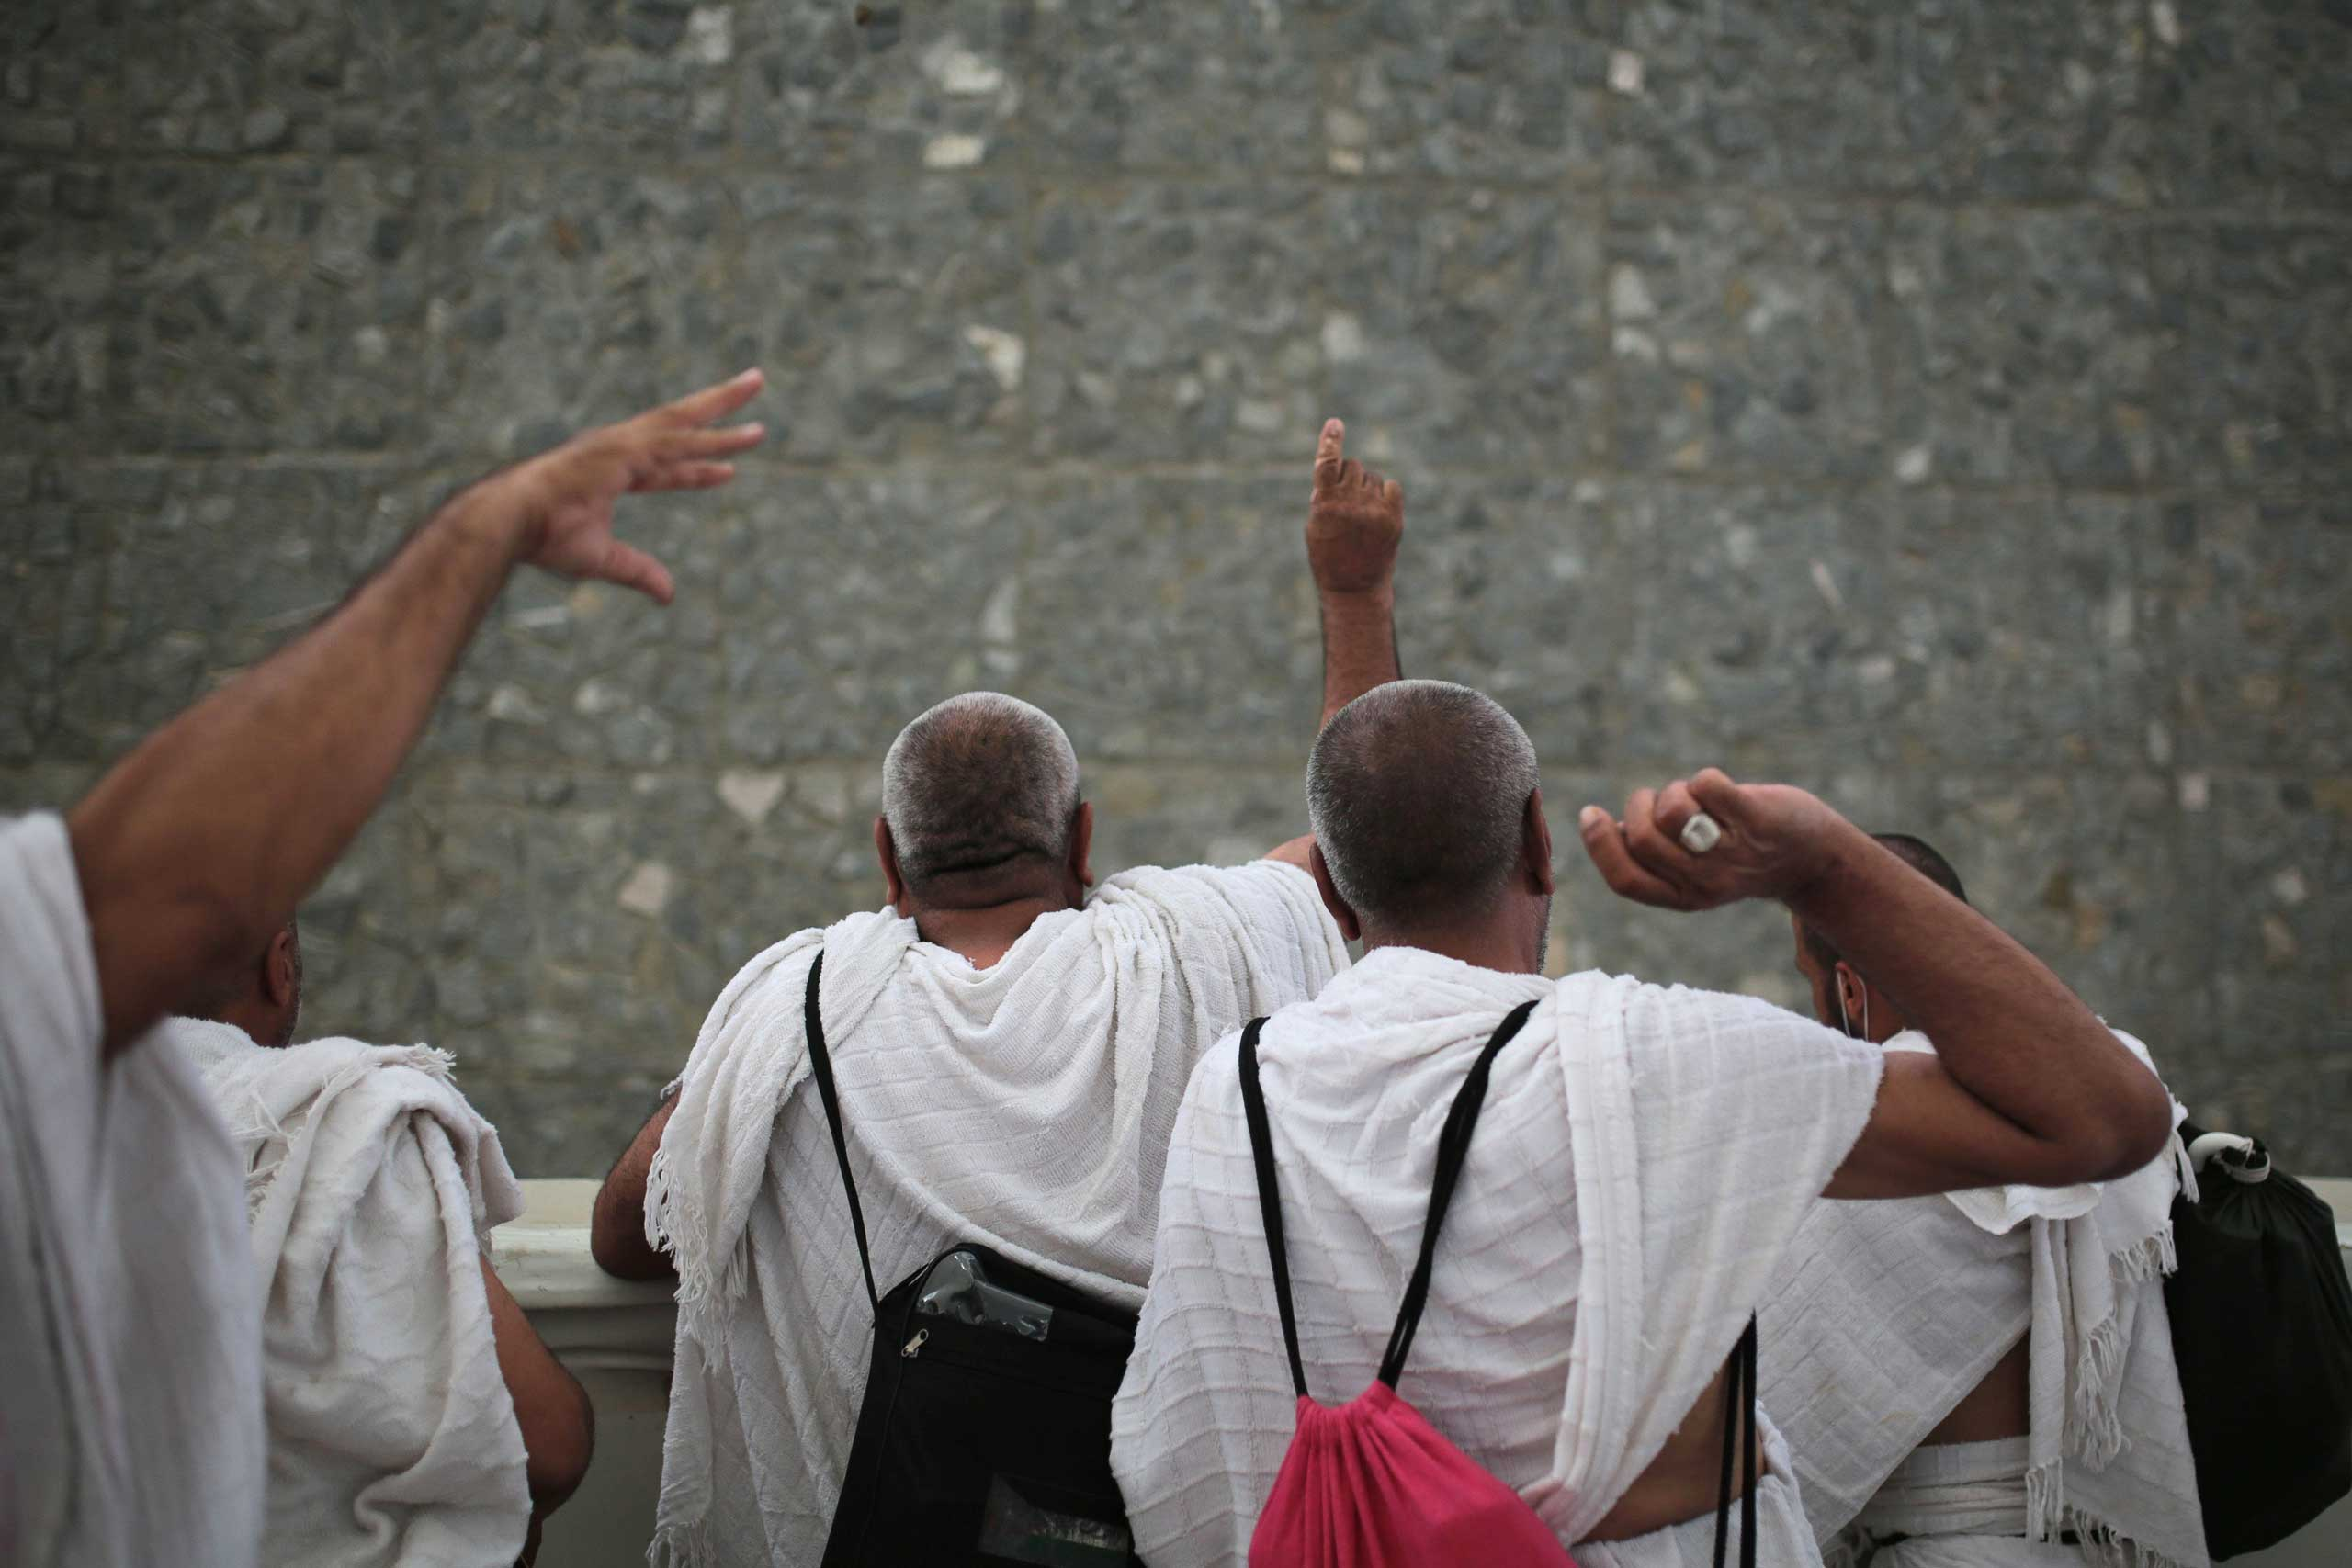 Muslim pilgrims cast stones at a pillar symbolizing the stoning of Satan, in a ritual called  Jamarat,  the last rite of the annual hajj, on the first day of Eid al-Adha, in Mina near the holy city of Mecca, on Sept. 24, 2015.